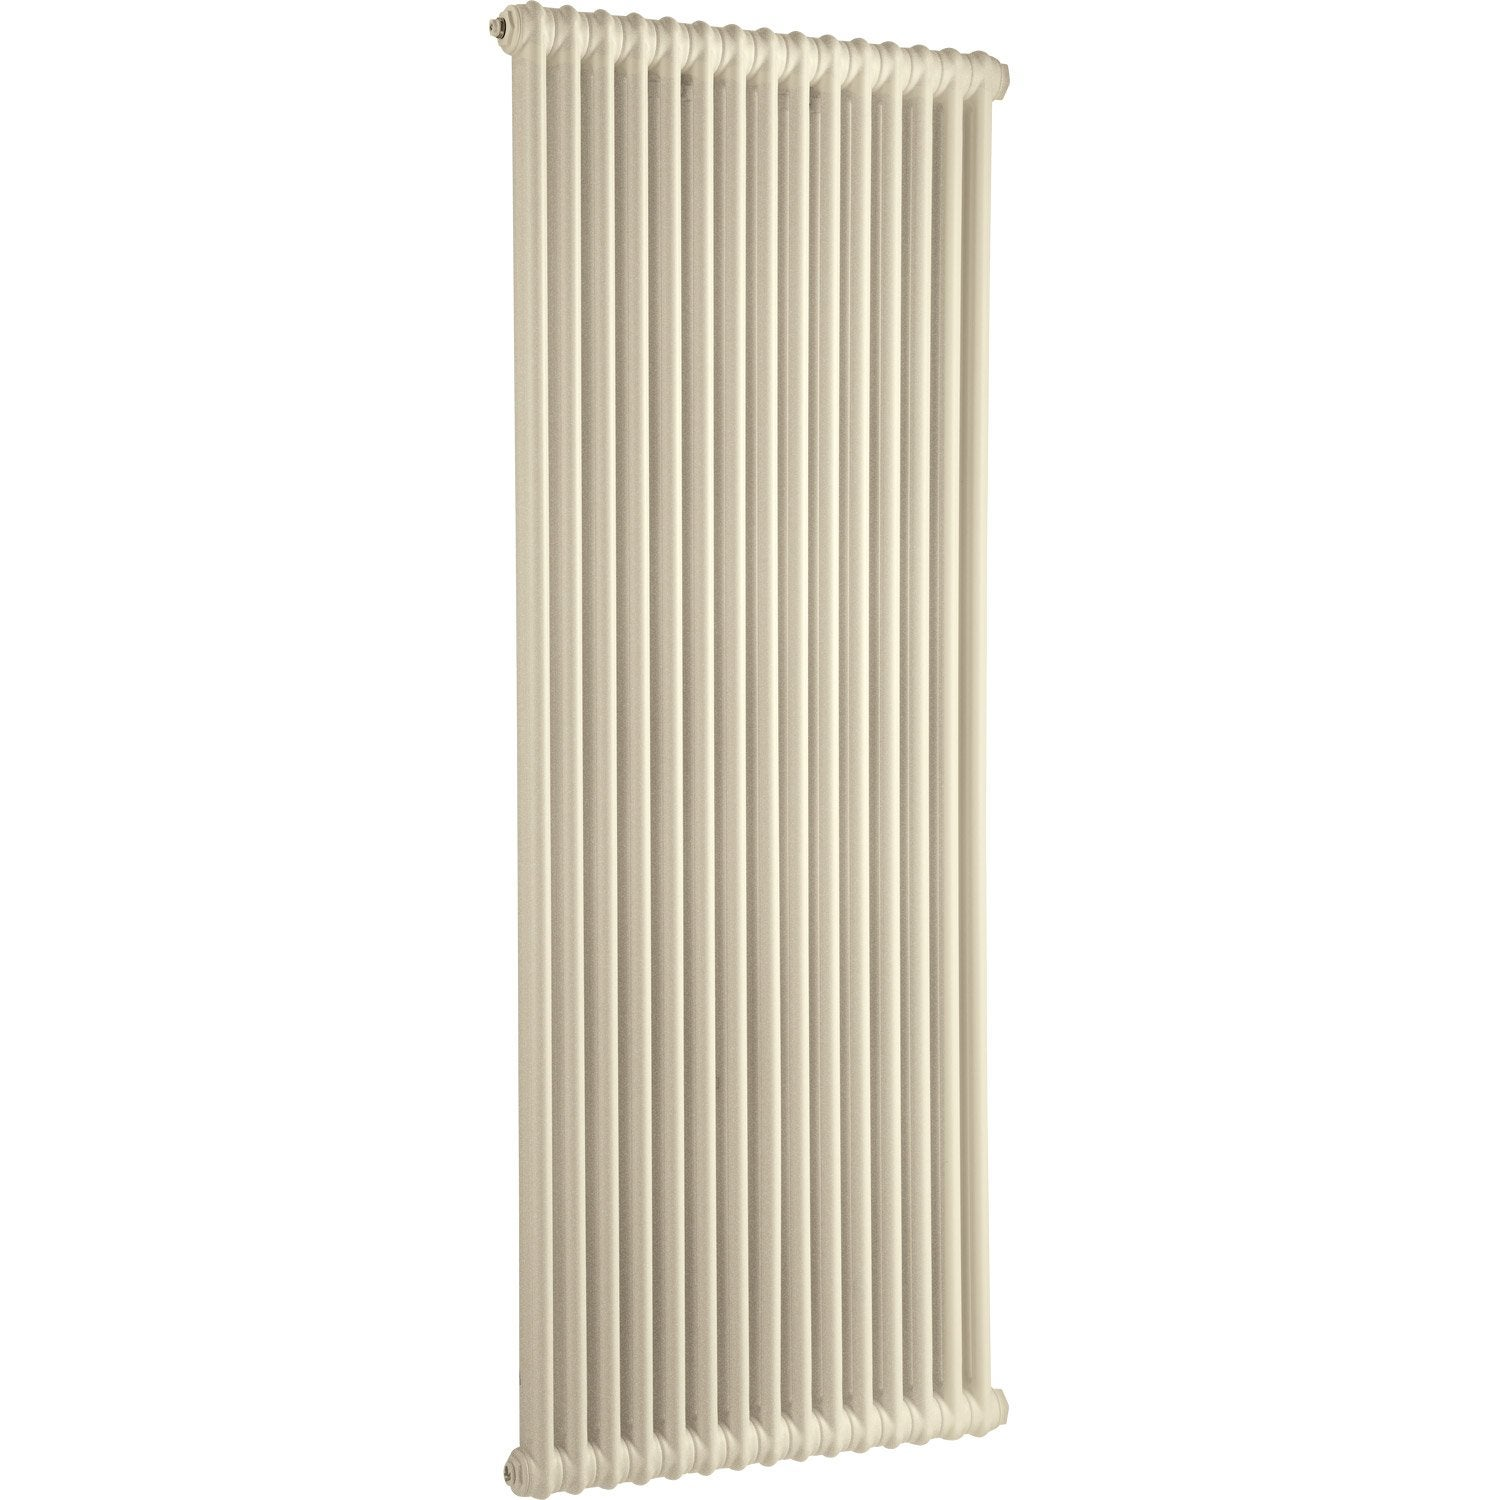 radiateur chauffage central tesi gris cm 1864 w leroy merlin. Black Bedroom Furniture Sets. Home Design Ideas